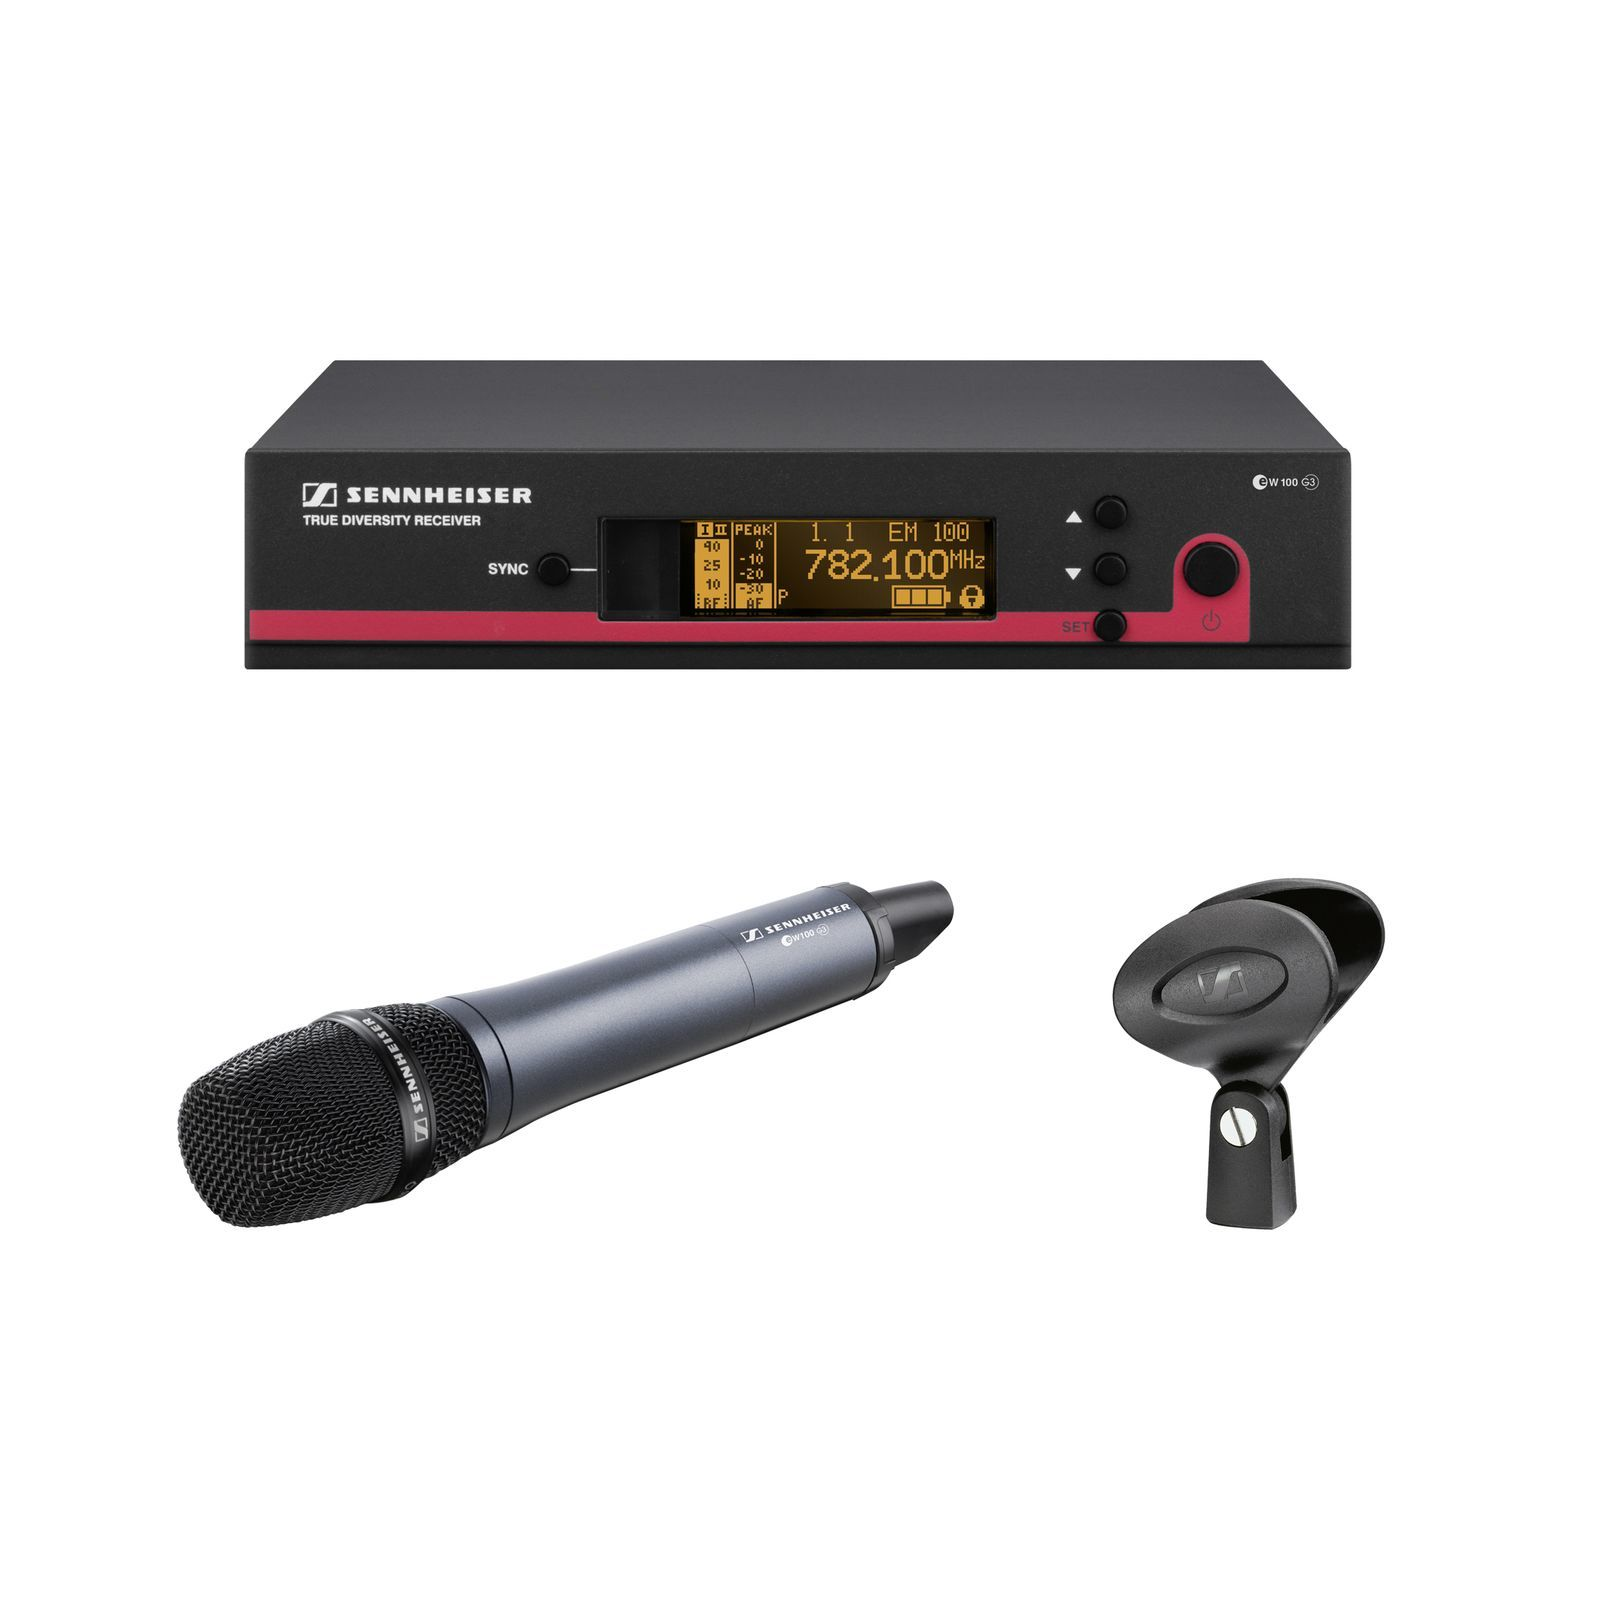 Sennheiser ew 135-GB G3 Vocal Set / 606 - 648 MHz Produktbild